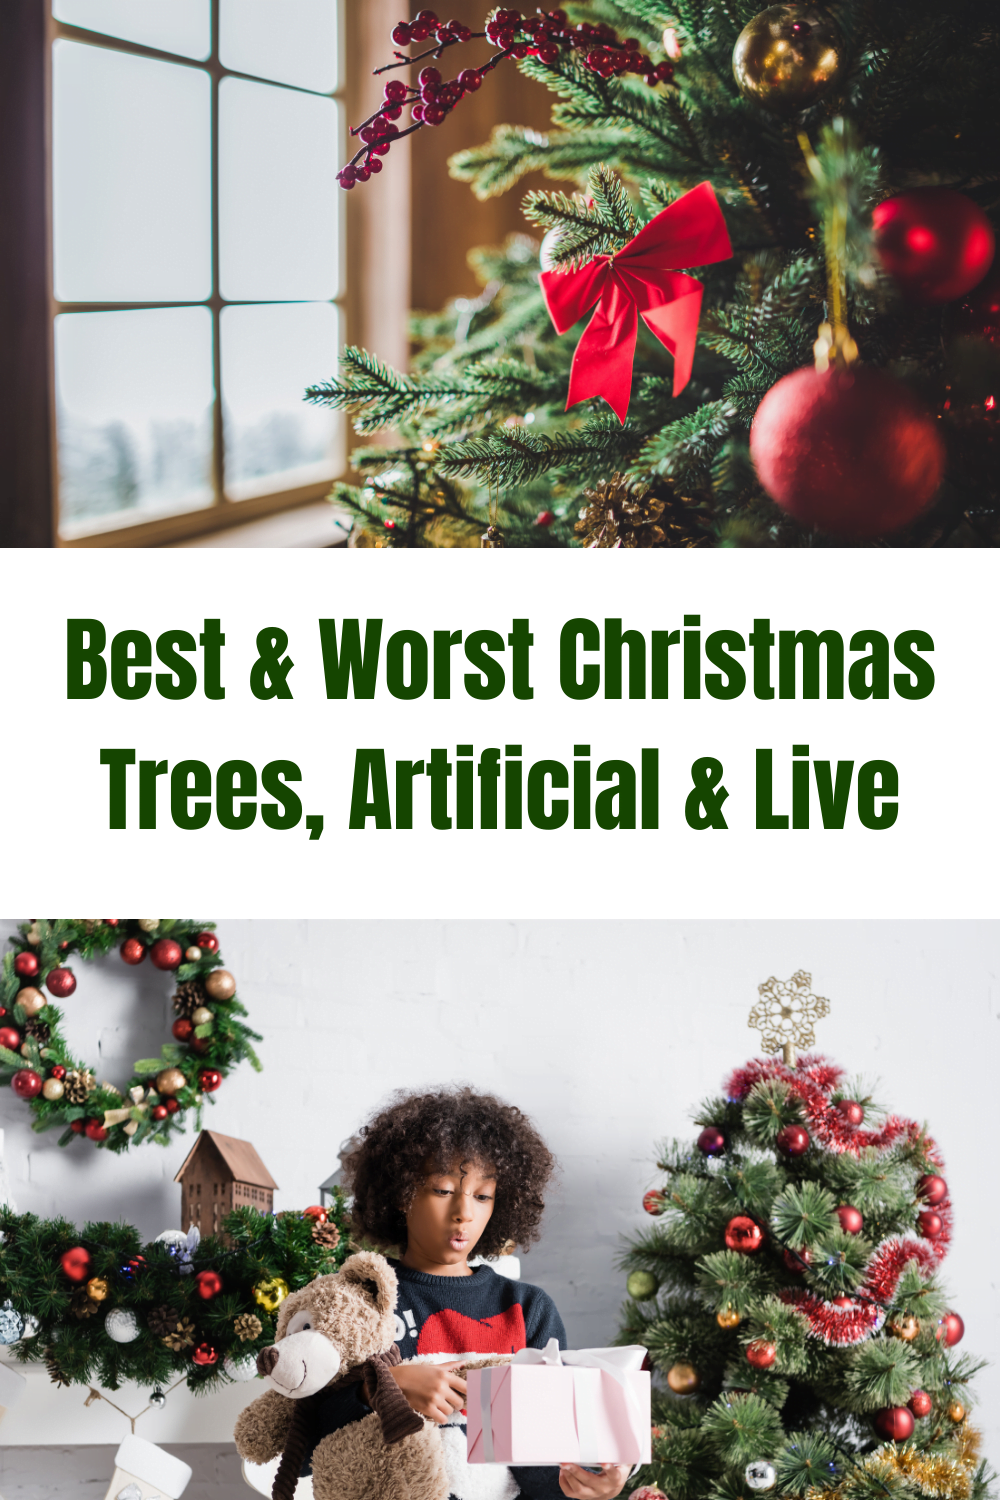 Best & Worst Christmas Trees, Artificial & Live